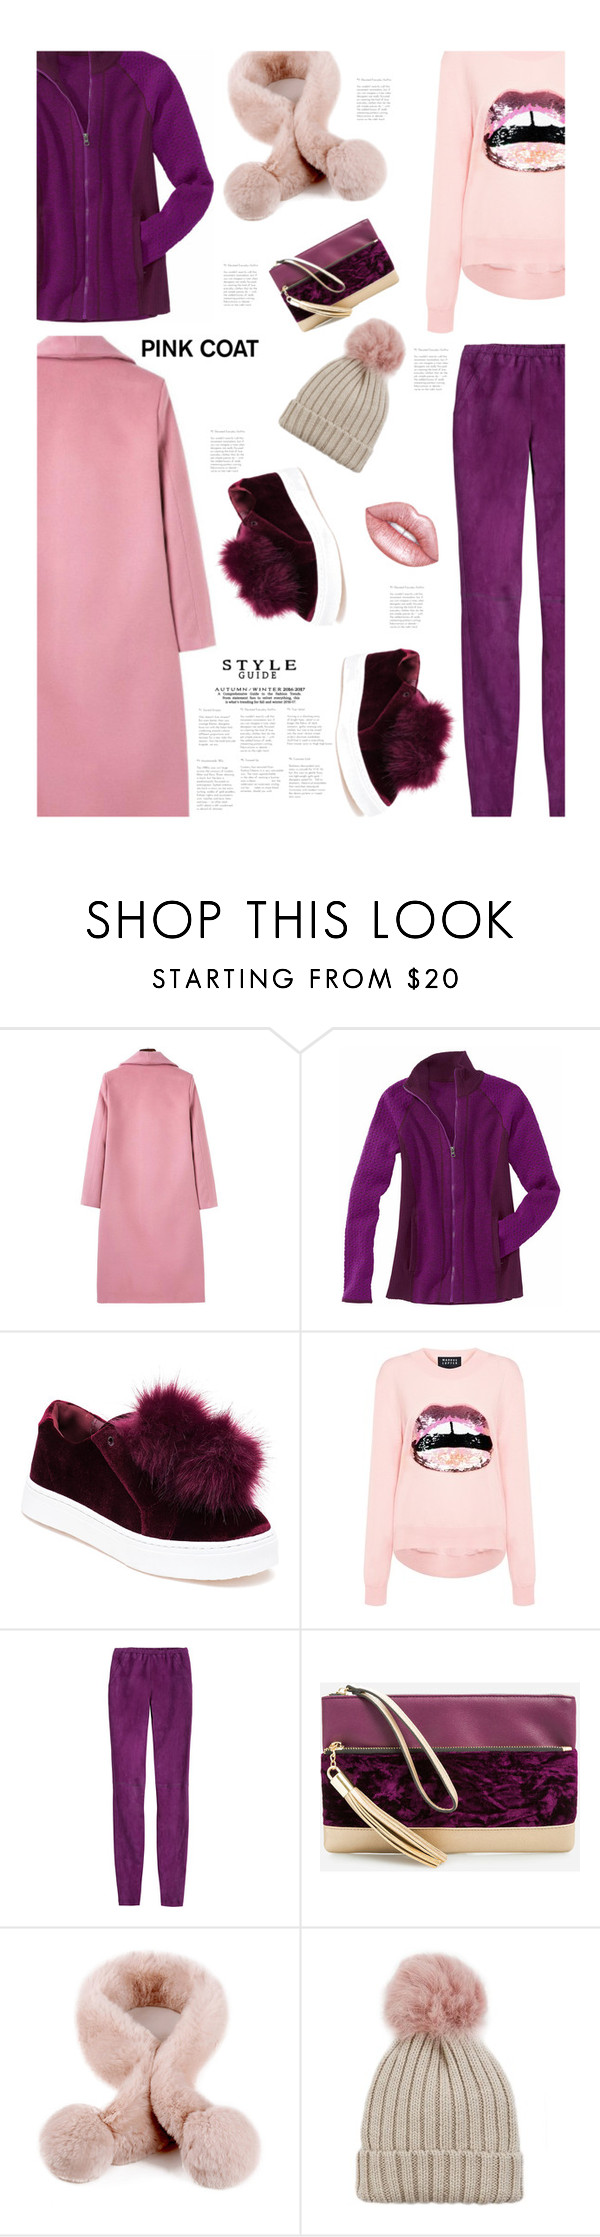 """""""Hey, Girl: Pretty Pink Coat'"""" by dianefantasy ❤ liked on Polyvore featuring Title Nine, Sam Edelman, Markus Lupfer, Emilio Pucci, Ashley Stewart, Jocelyn, Lime Crime, polyvorecommunity, polyvoreeditorial and pinkcoats"""